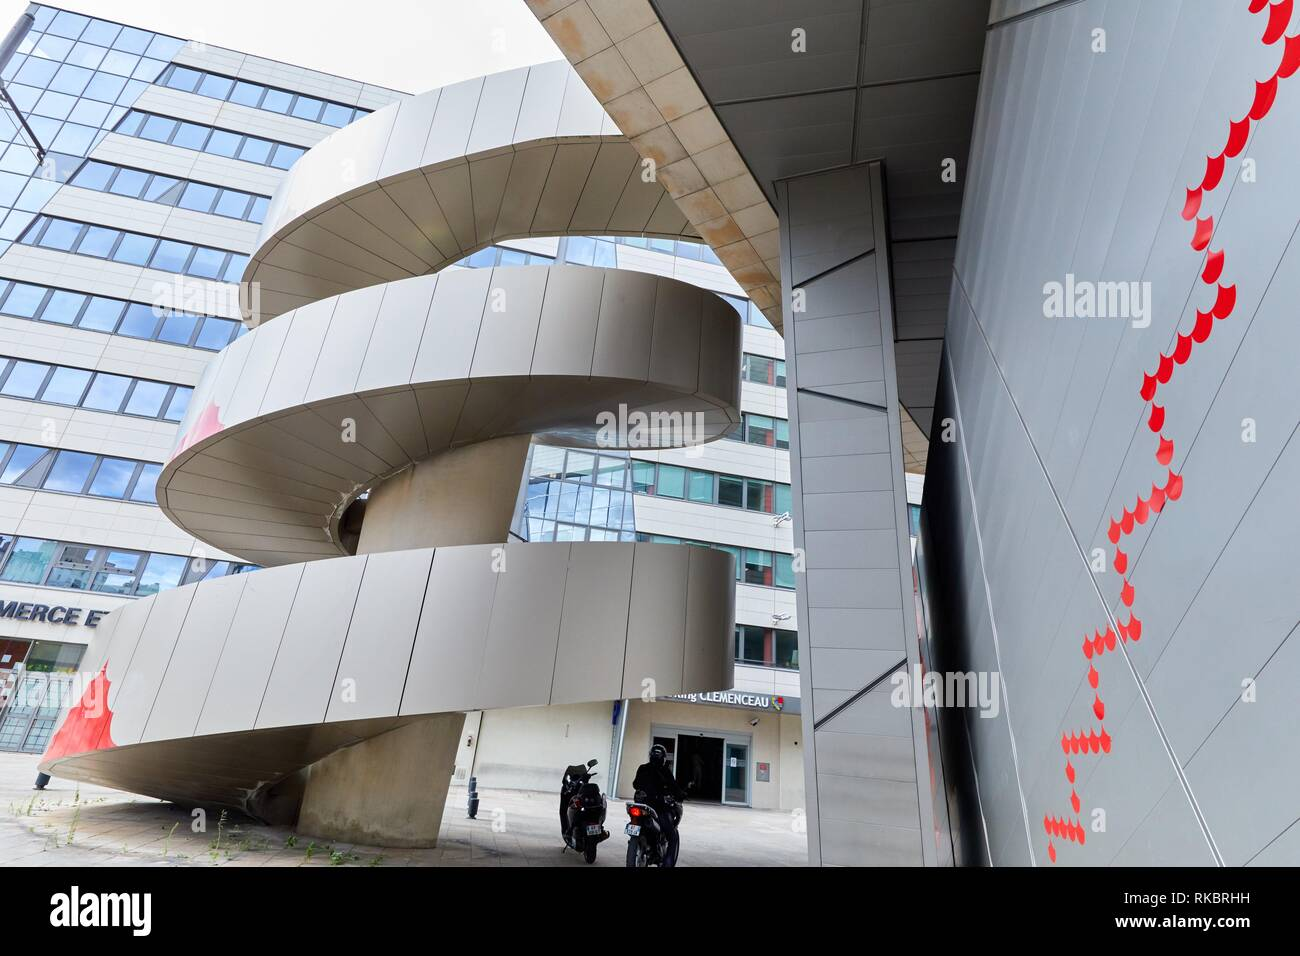 Chambre de Commerce et d´Industrie, Auditorium, Dijon, Côte d´Or, Burgundy Region, Bourgogne, France, Europe - Stock Image